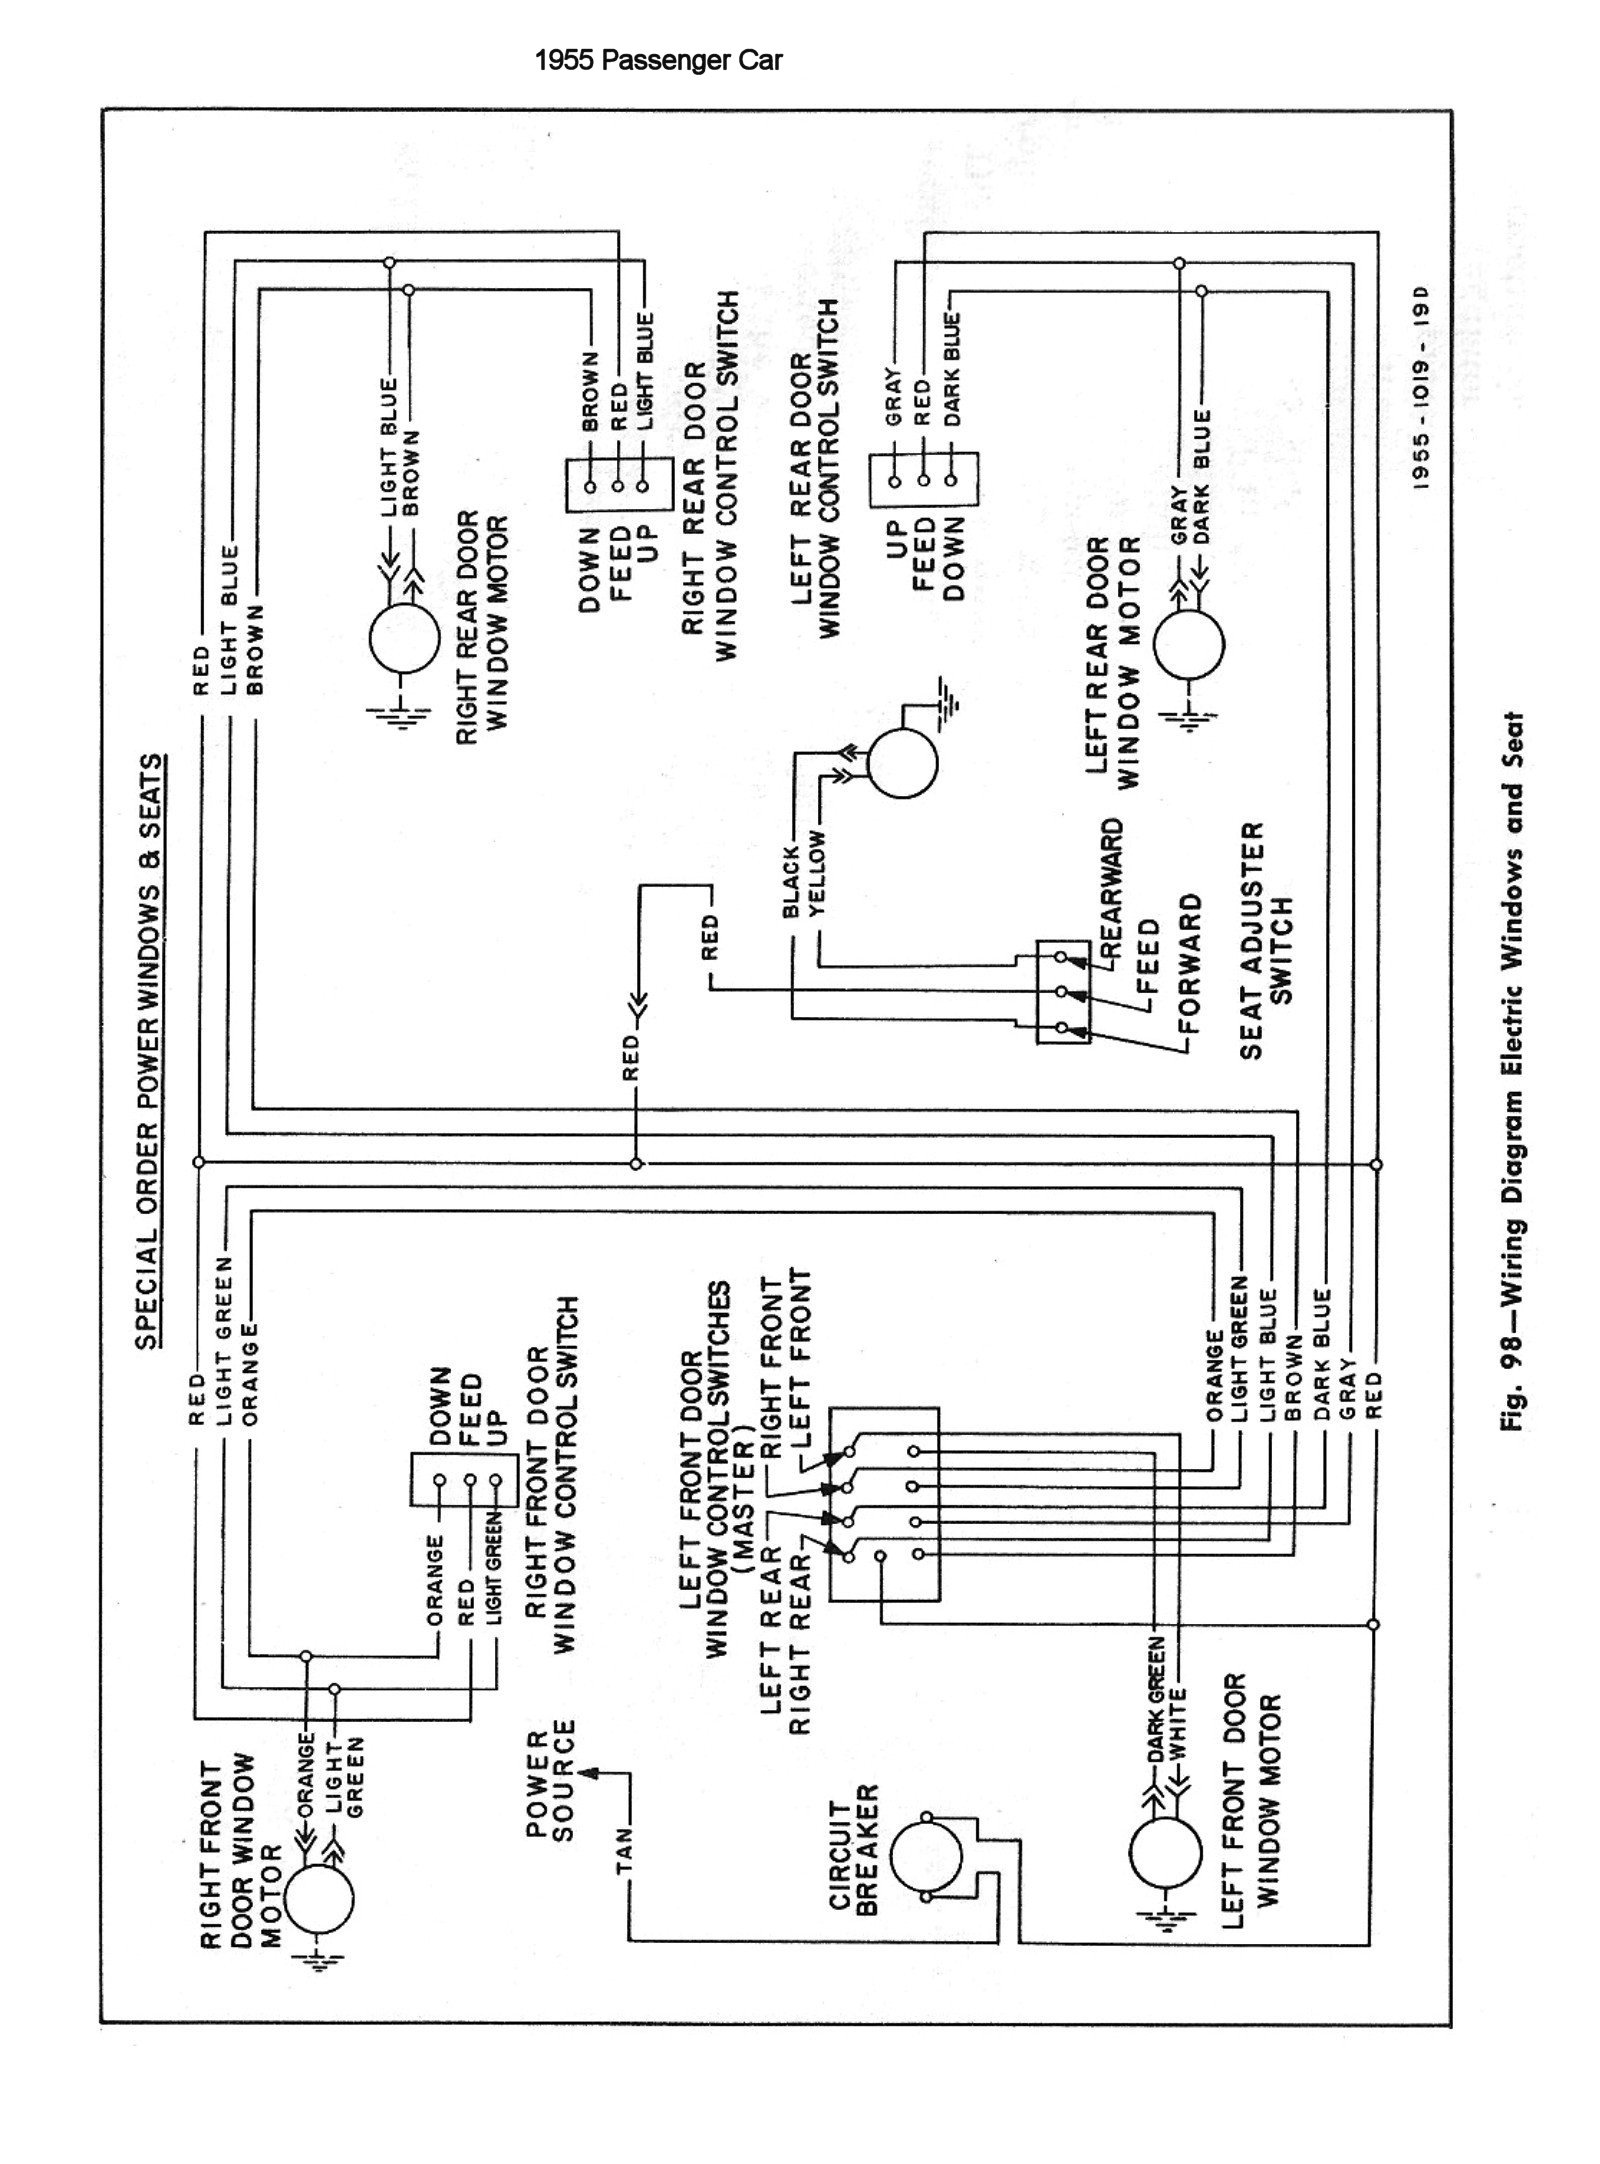 84 chevy truck door wiring diagram